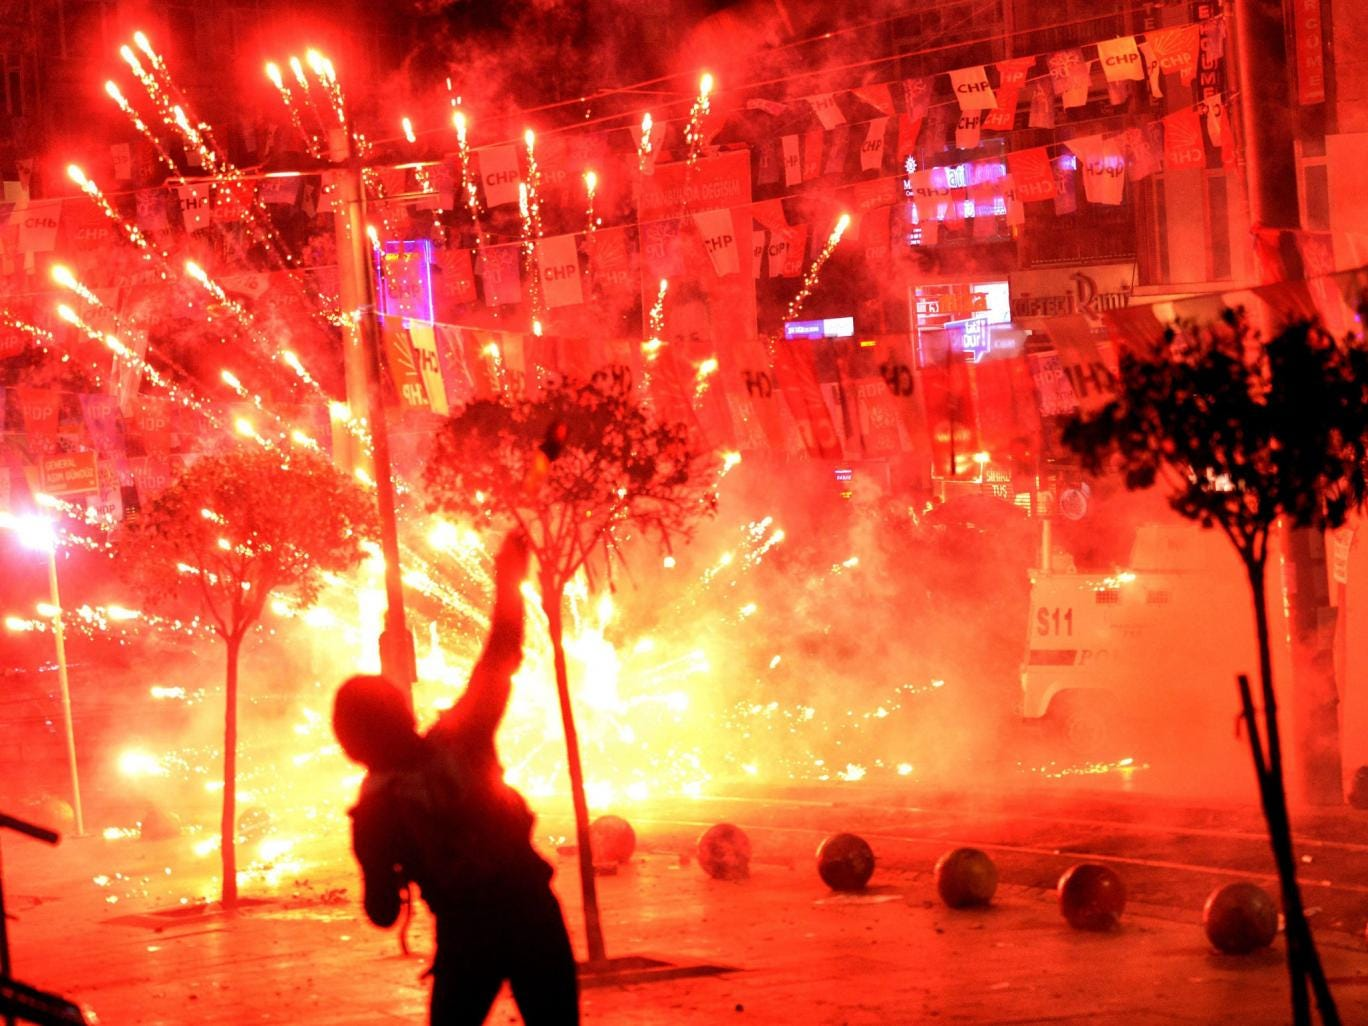 Fireworks thrown by protesters against Turkish riot police explodes and illuminates the scene during a demonstration in Istanbul